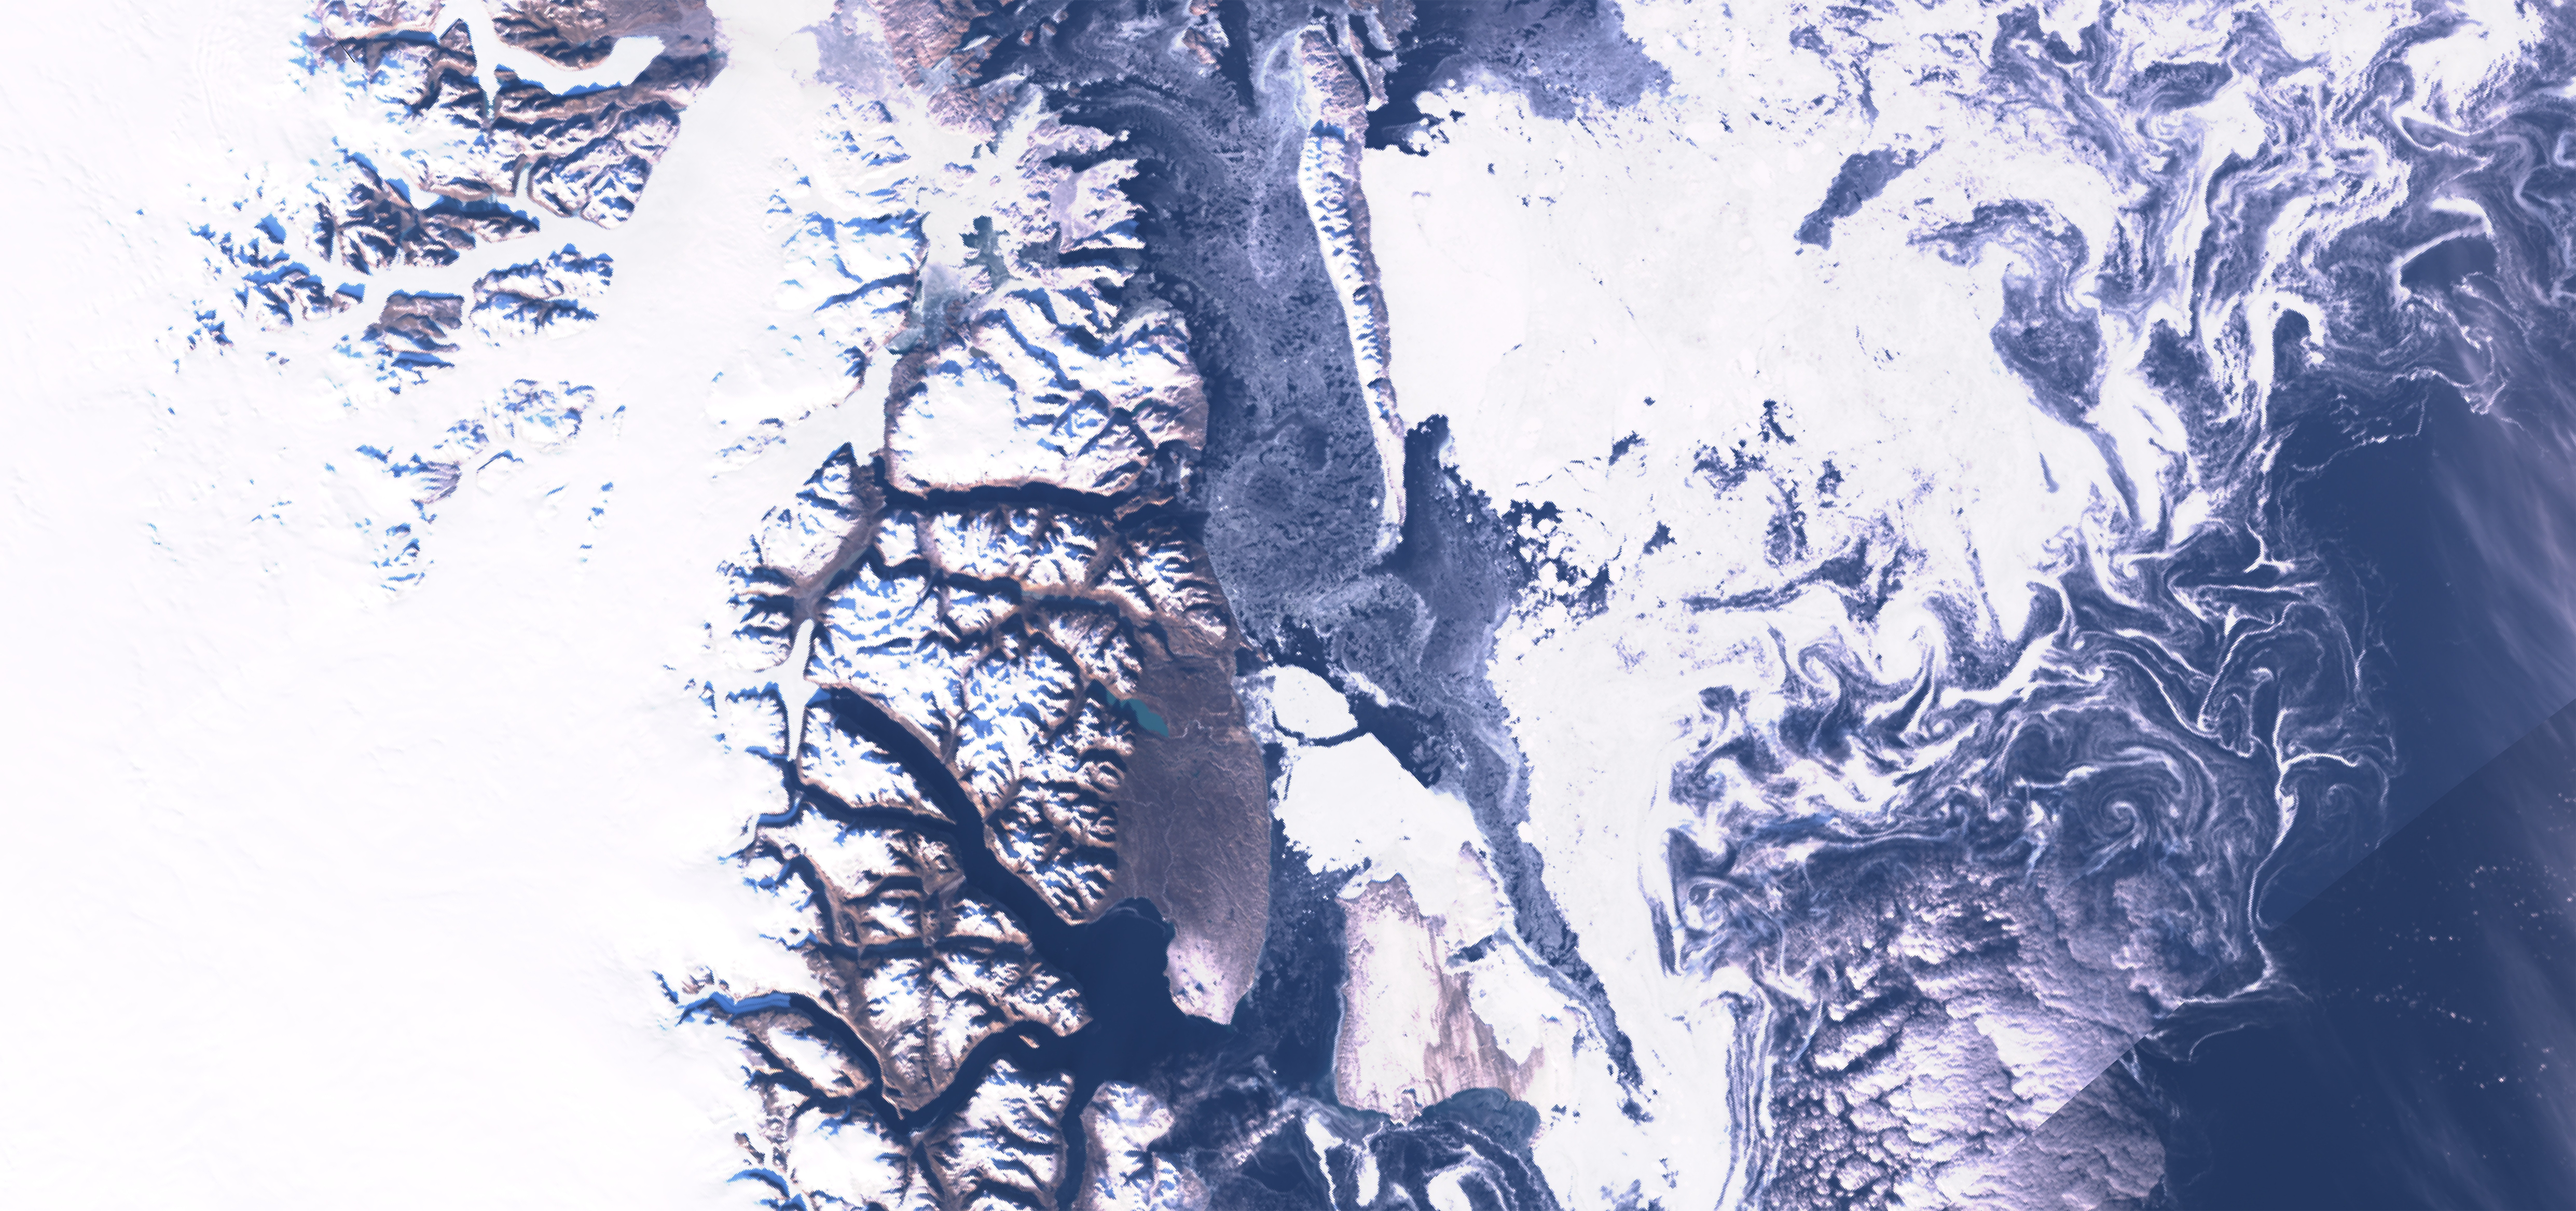 Sentinel-3B OLCI True Colour RGB, 25 September, 13:35 UTC, showing land and sea ice conditions around the minimum extent of seasonal ice cover off Greenland.